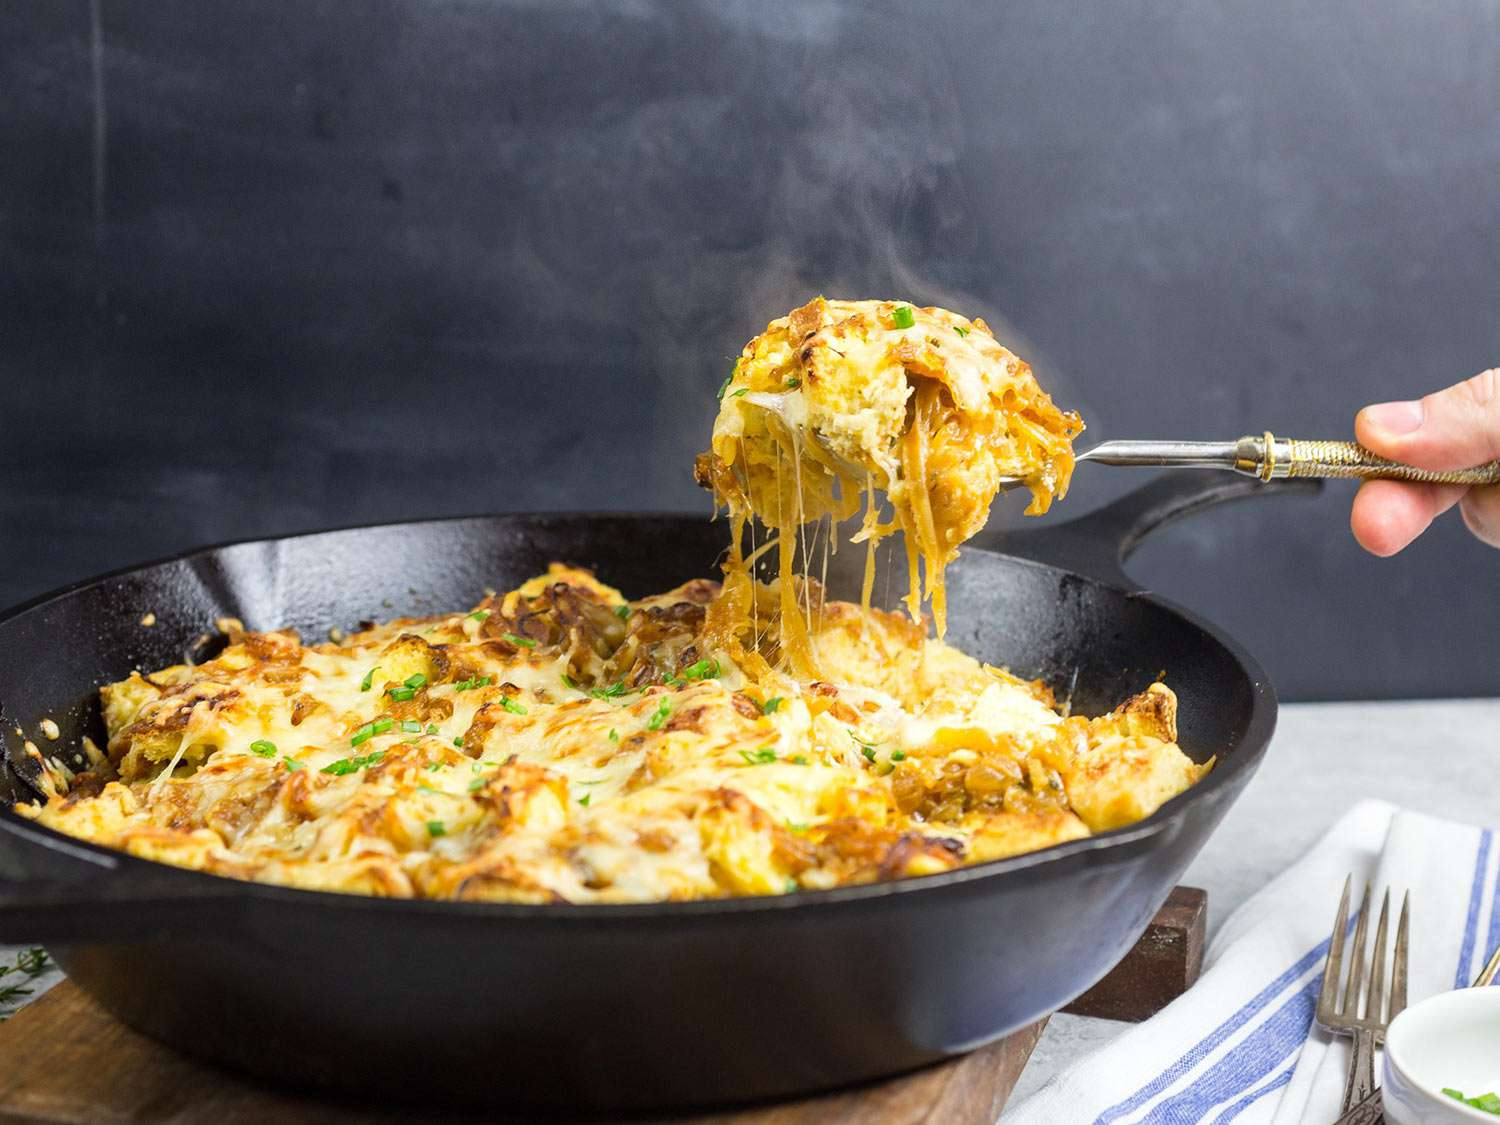 French Onion Strata in a skillet with a spoon of cheesy strata held above the skillet.